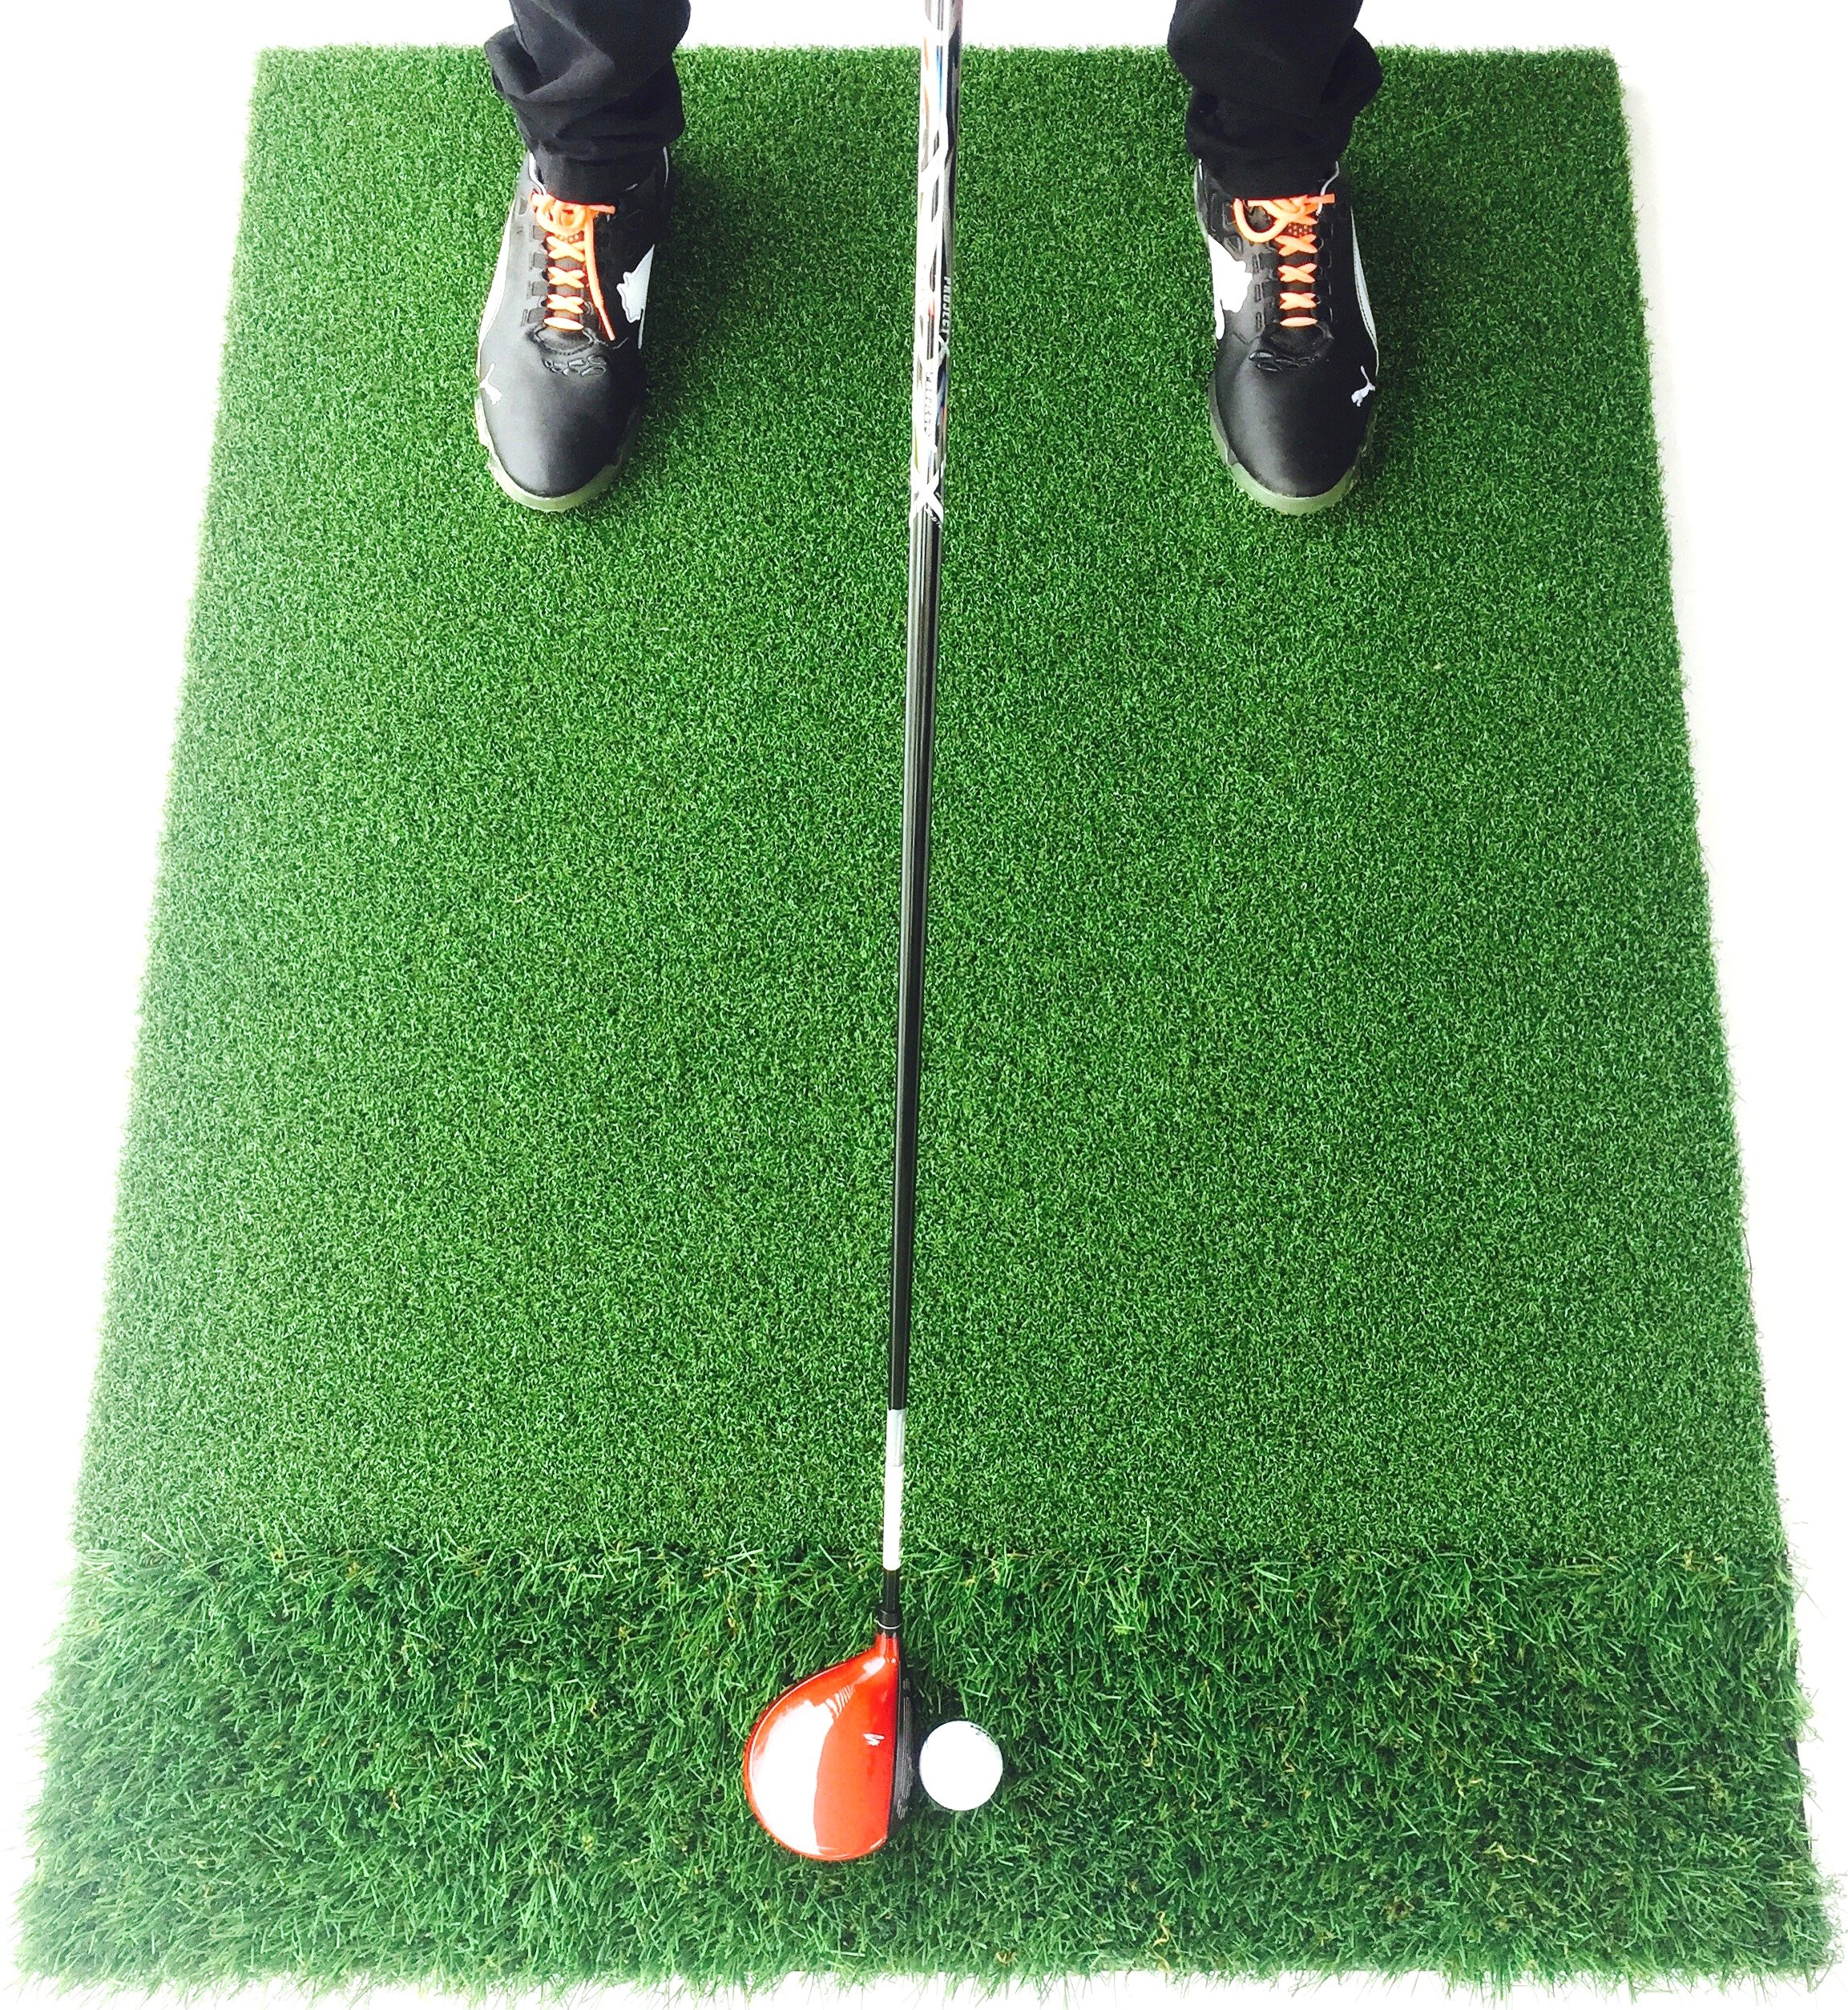 pro professional forb mats green putting mat net practice indoor golf